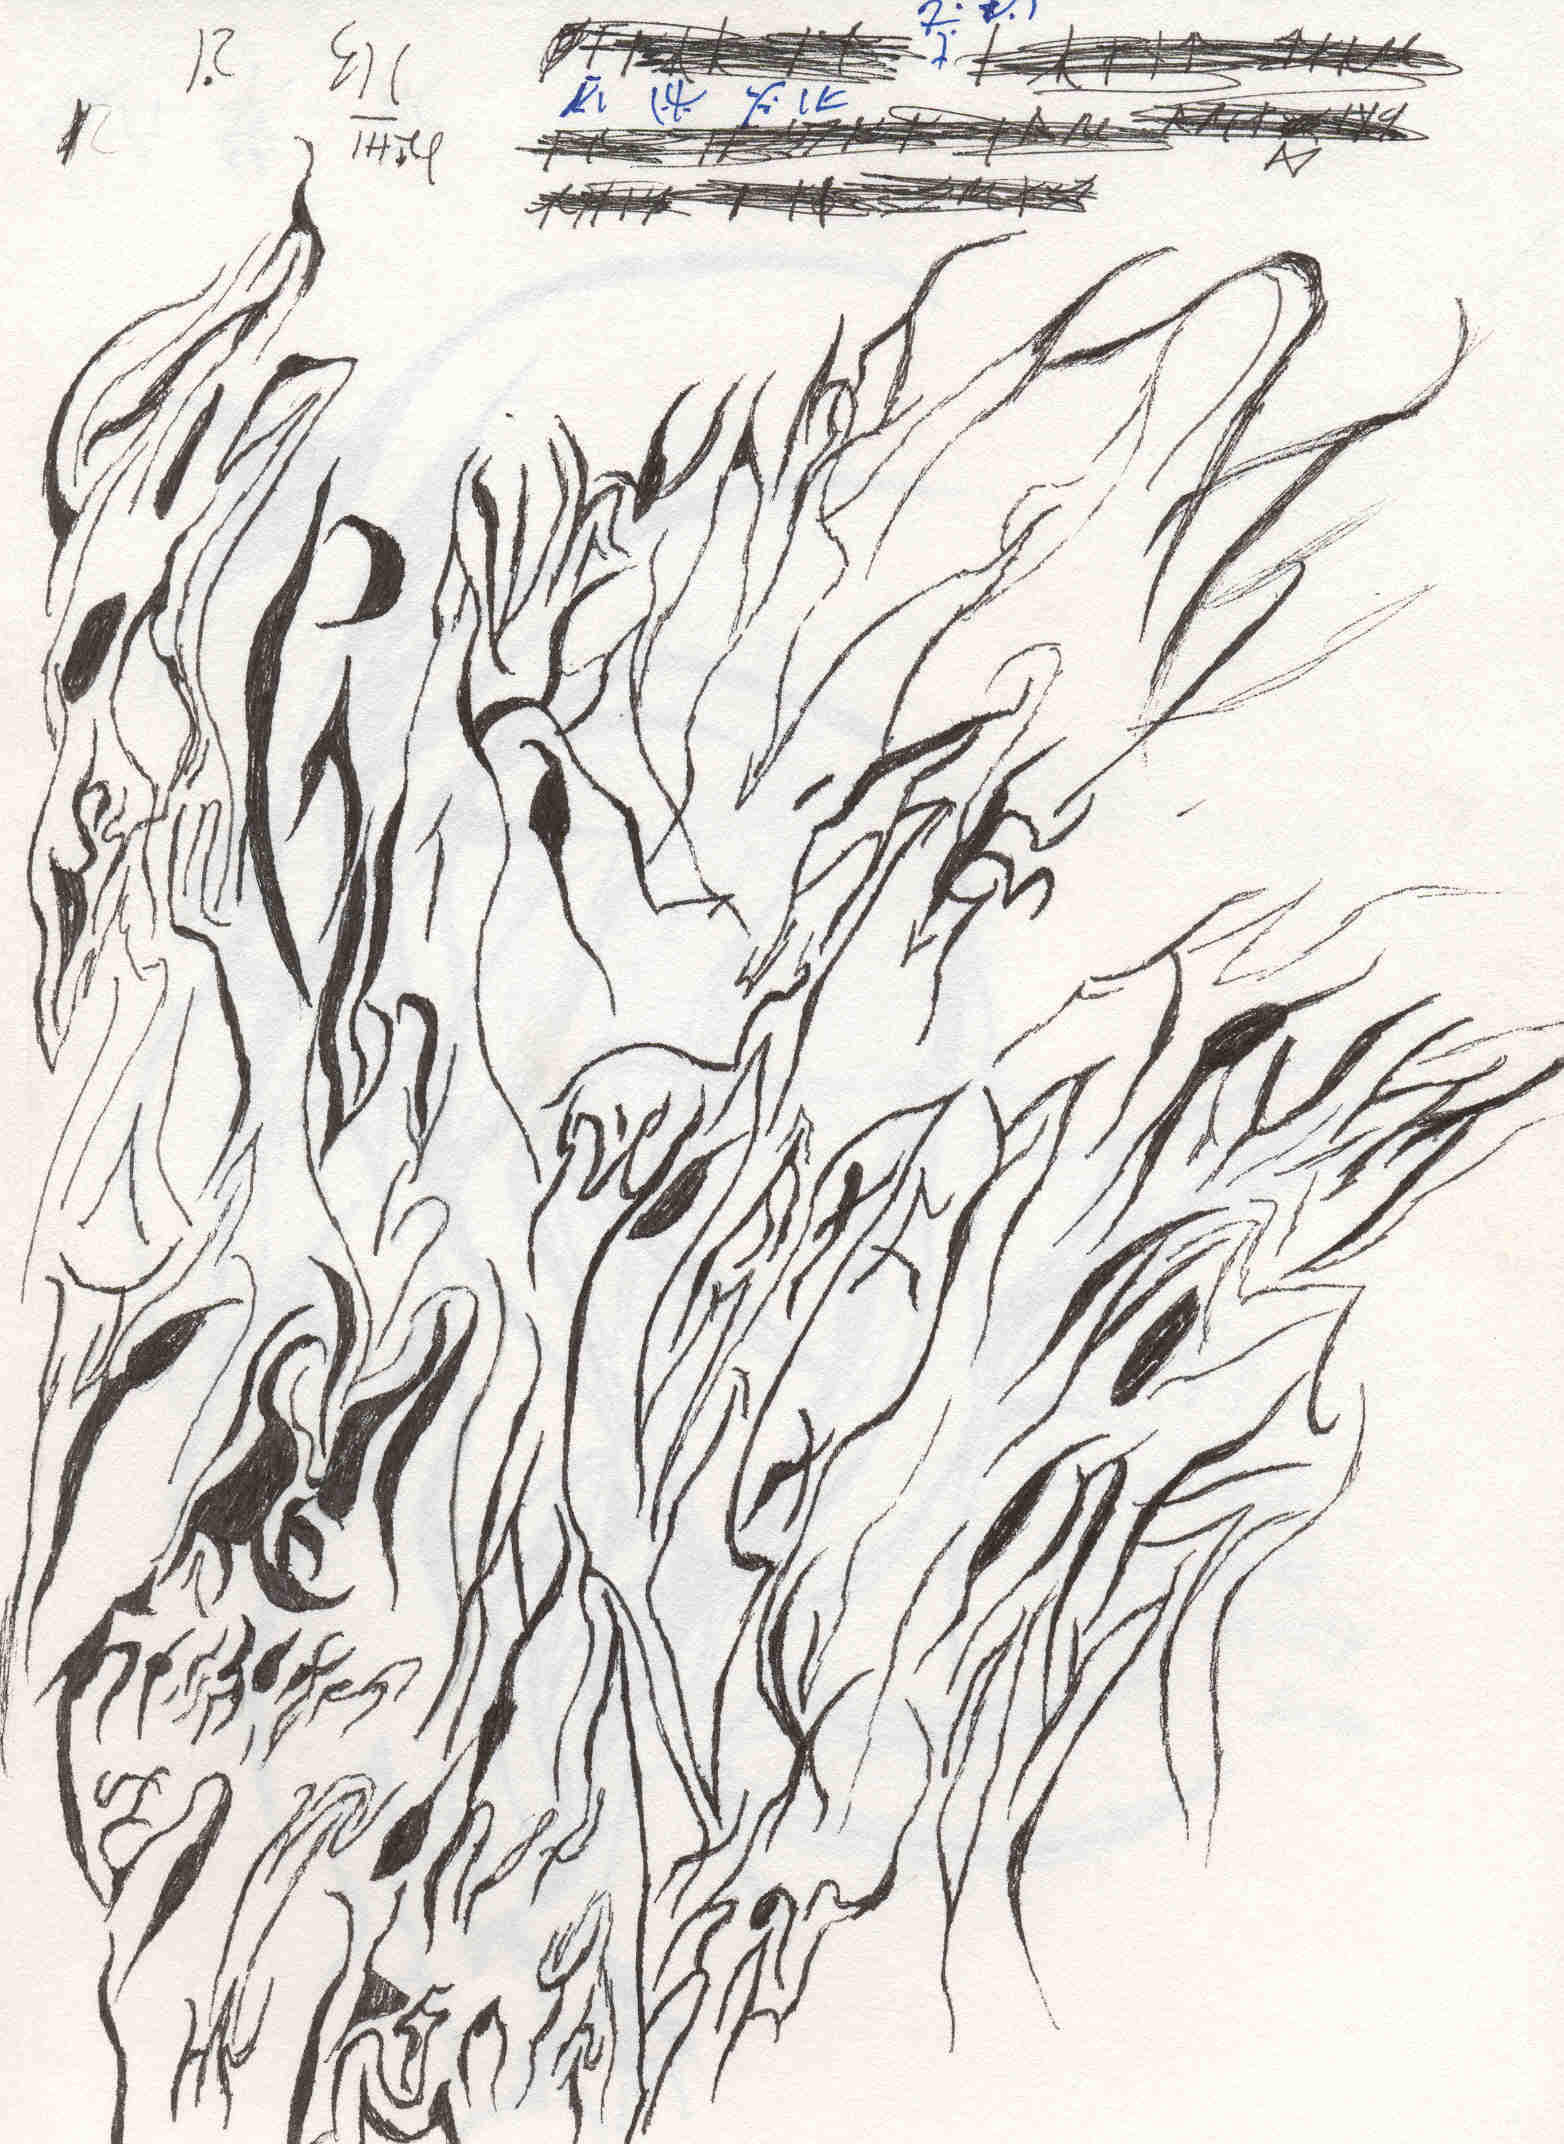 Drawings With Hidden Meaning Hidden meaningby cyruskantienDrawings With Hidden Meaning